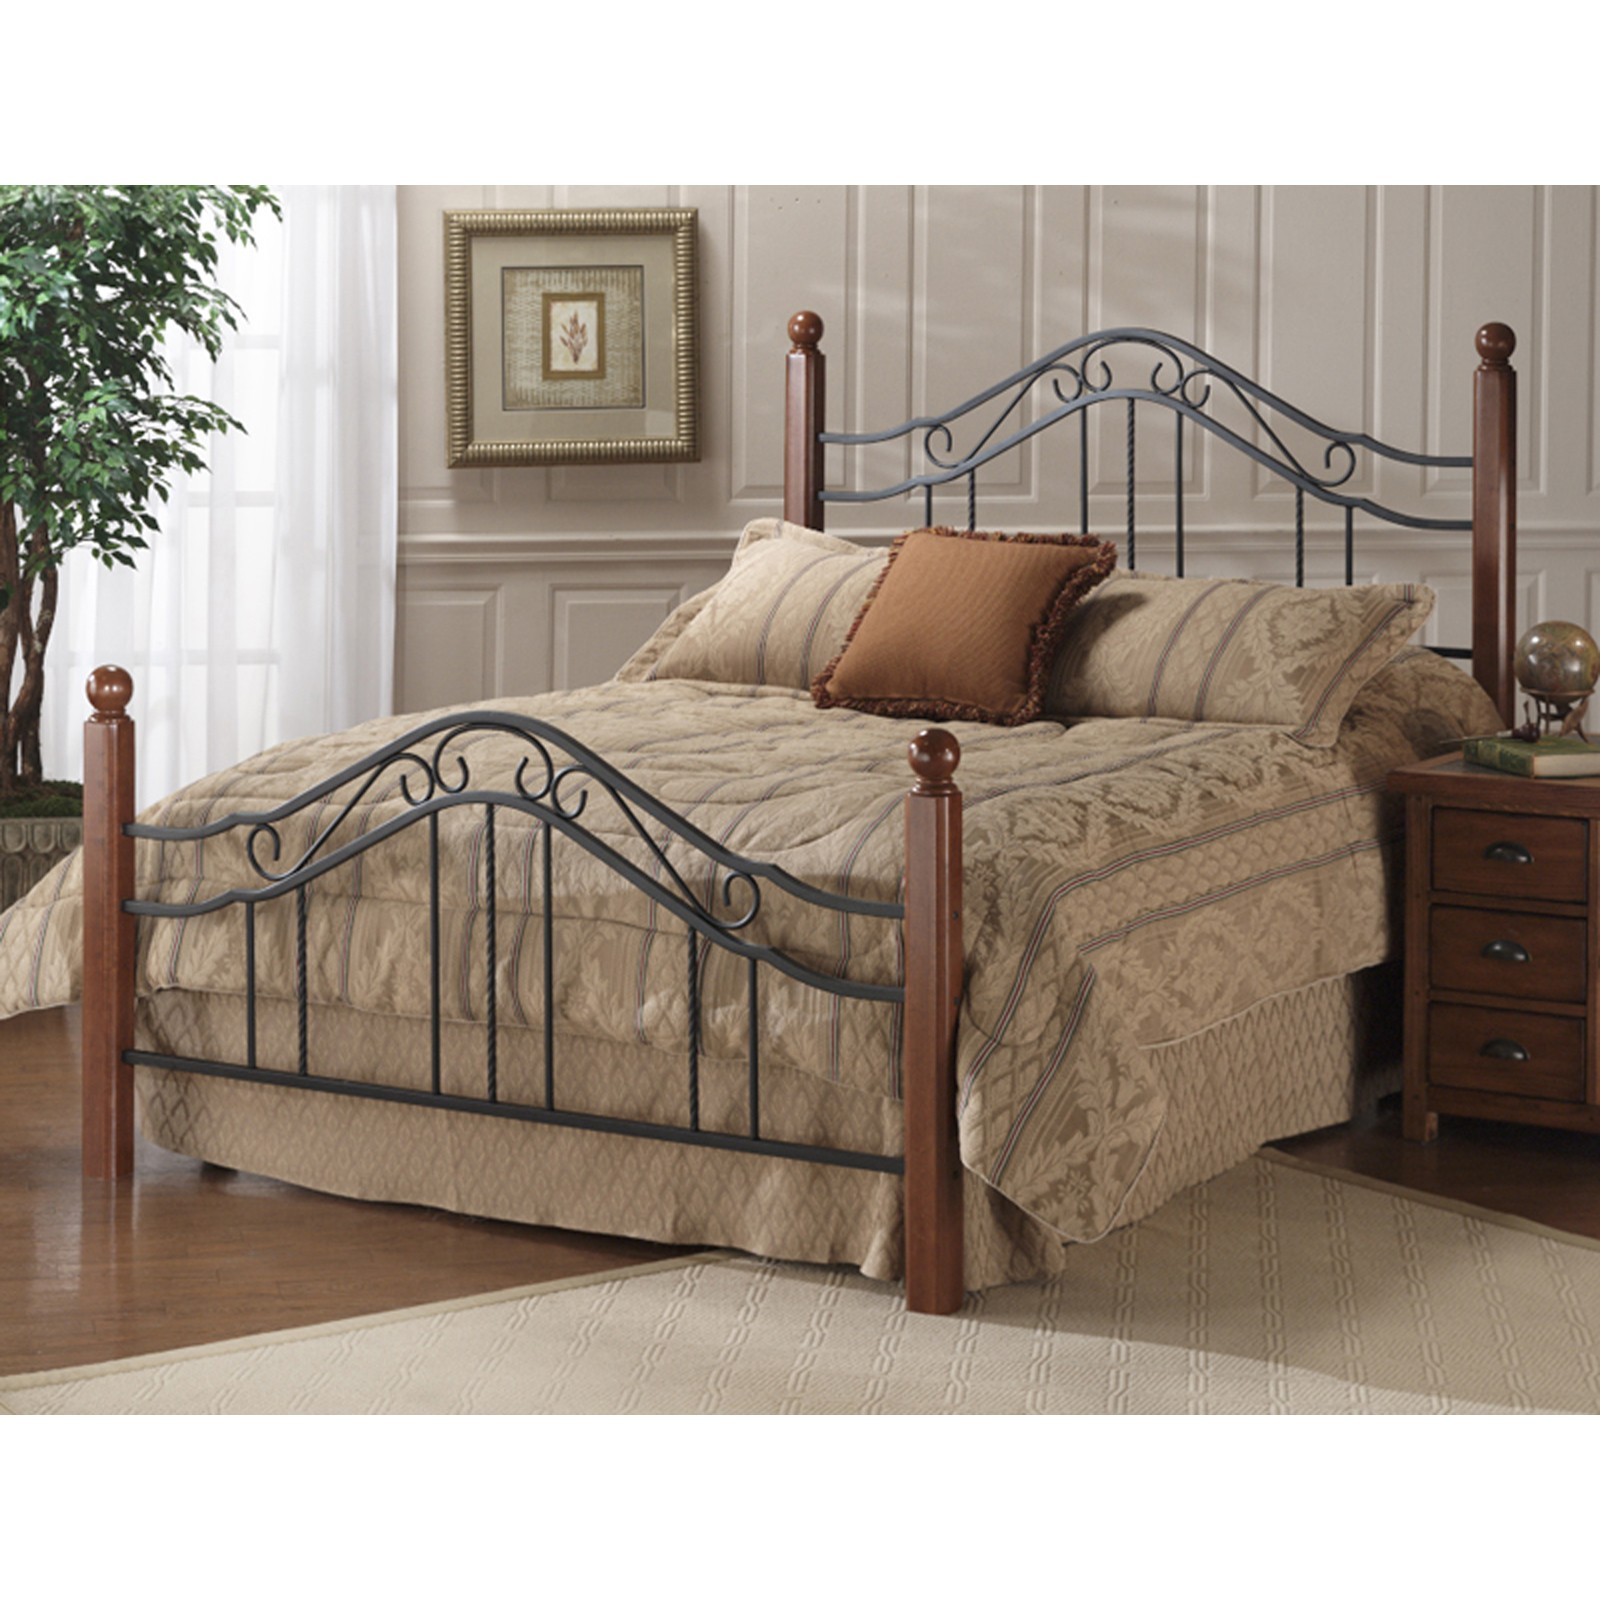 Classic Wood And Wrought Iron King Size Poster Bed Headboard Footboard And Rails